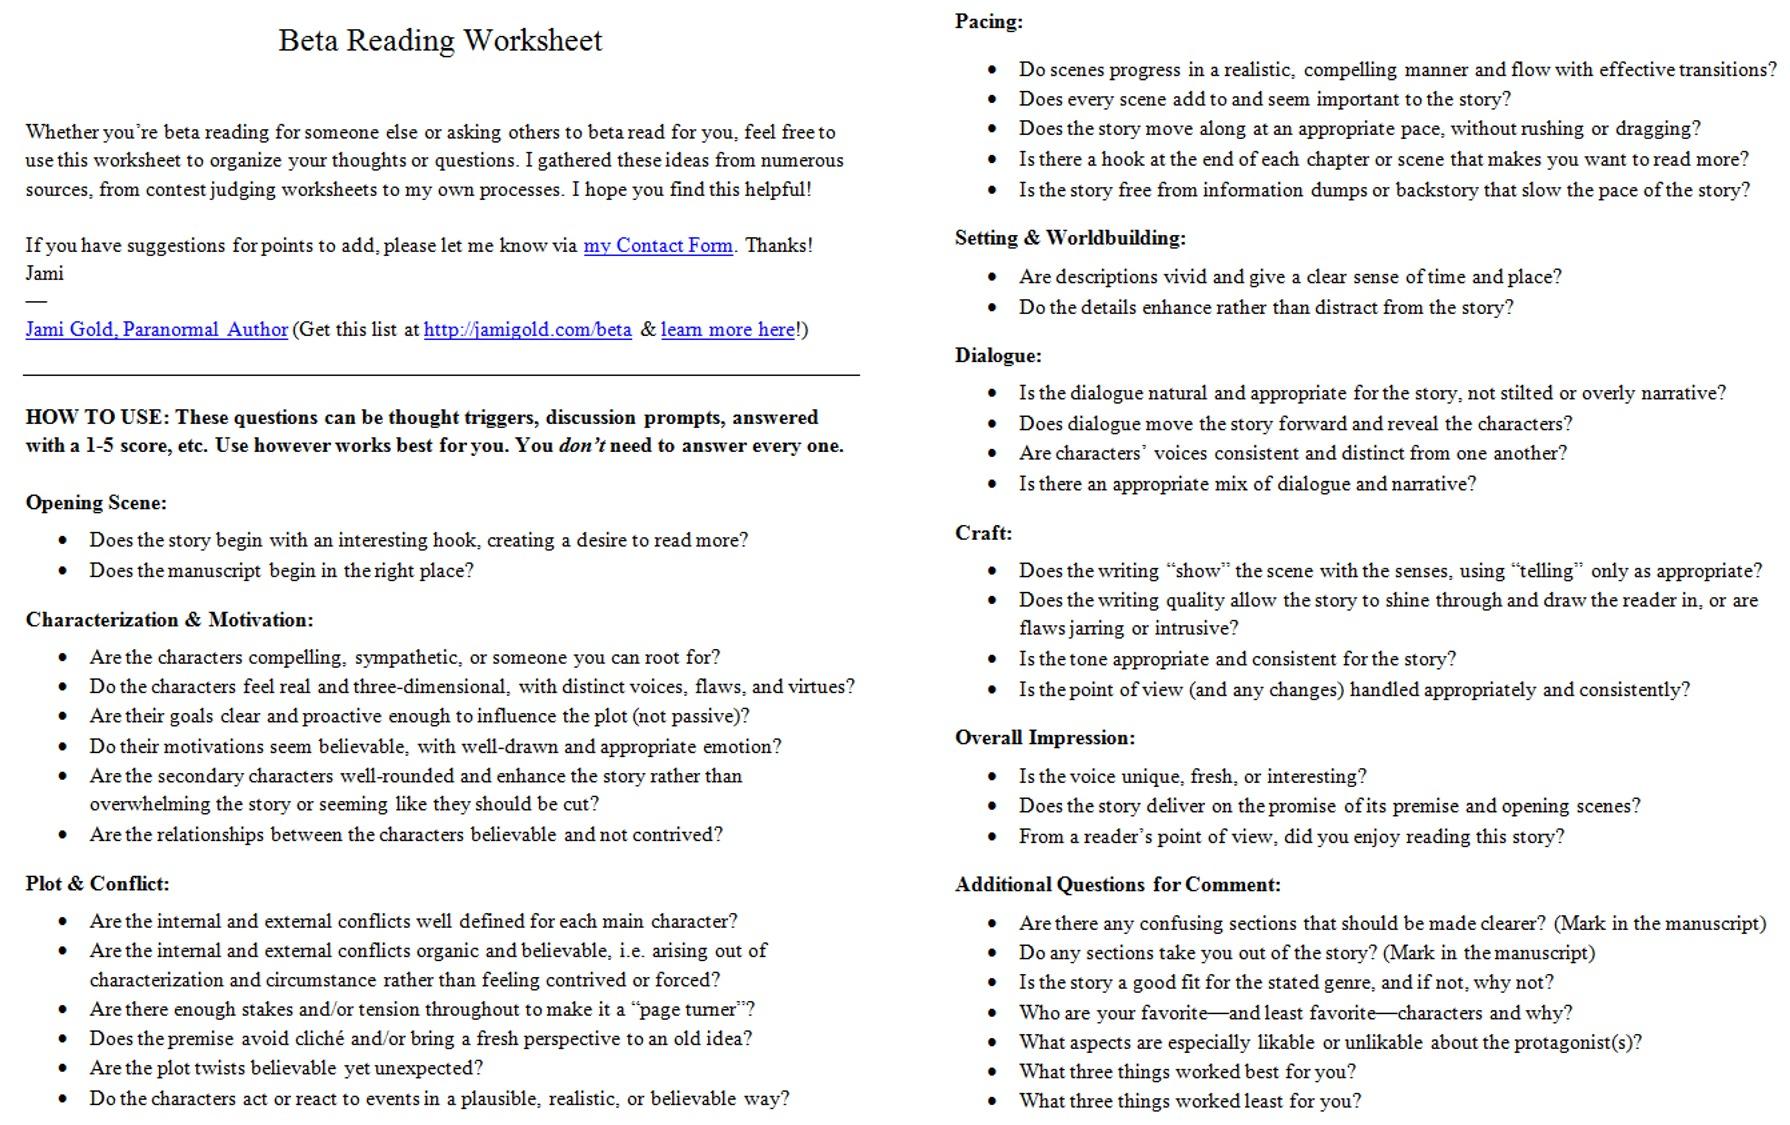 Proatmealus  Surprising Worksheets For Writers  Jami Gold Paranormal Author With Heavenly Screen Shot Of The Twopage Beta Reading Worksheet With Alluring Math  Today Grade  Worksheets Also Worksheets For Beginning Esl Students In Addition Year  Worksheets Maths And Civil War Worksheet As Well As Word Problems For Th Grade Worksheets Additionally Timeline Worksheets For Th Grade From Jamigoldcom With Proatmealus  Heavenly Worksheets For Writers  Jami Gold Paranormal Author With Alluring Screen Shot Of The Twopage Beta Reading Worksheet And Surprising Math  Today Grade  Worksheets Also Worksheets For Beginning Esl Students In Addition Year  Worksheets Maths From Jamigoldcom